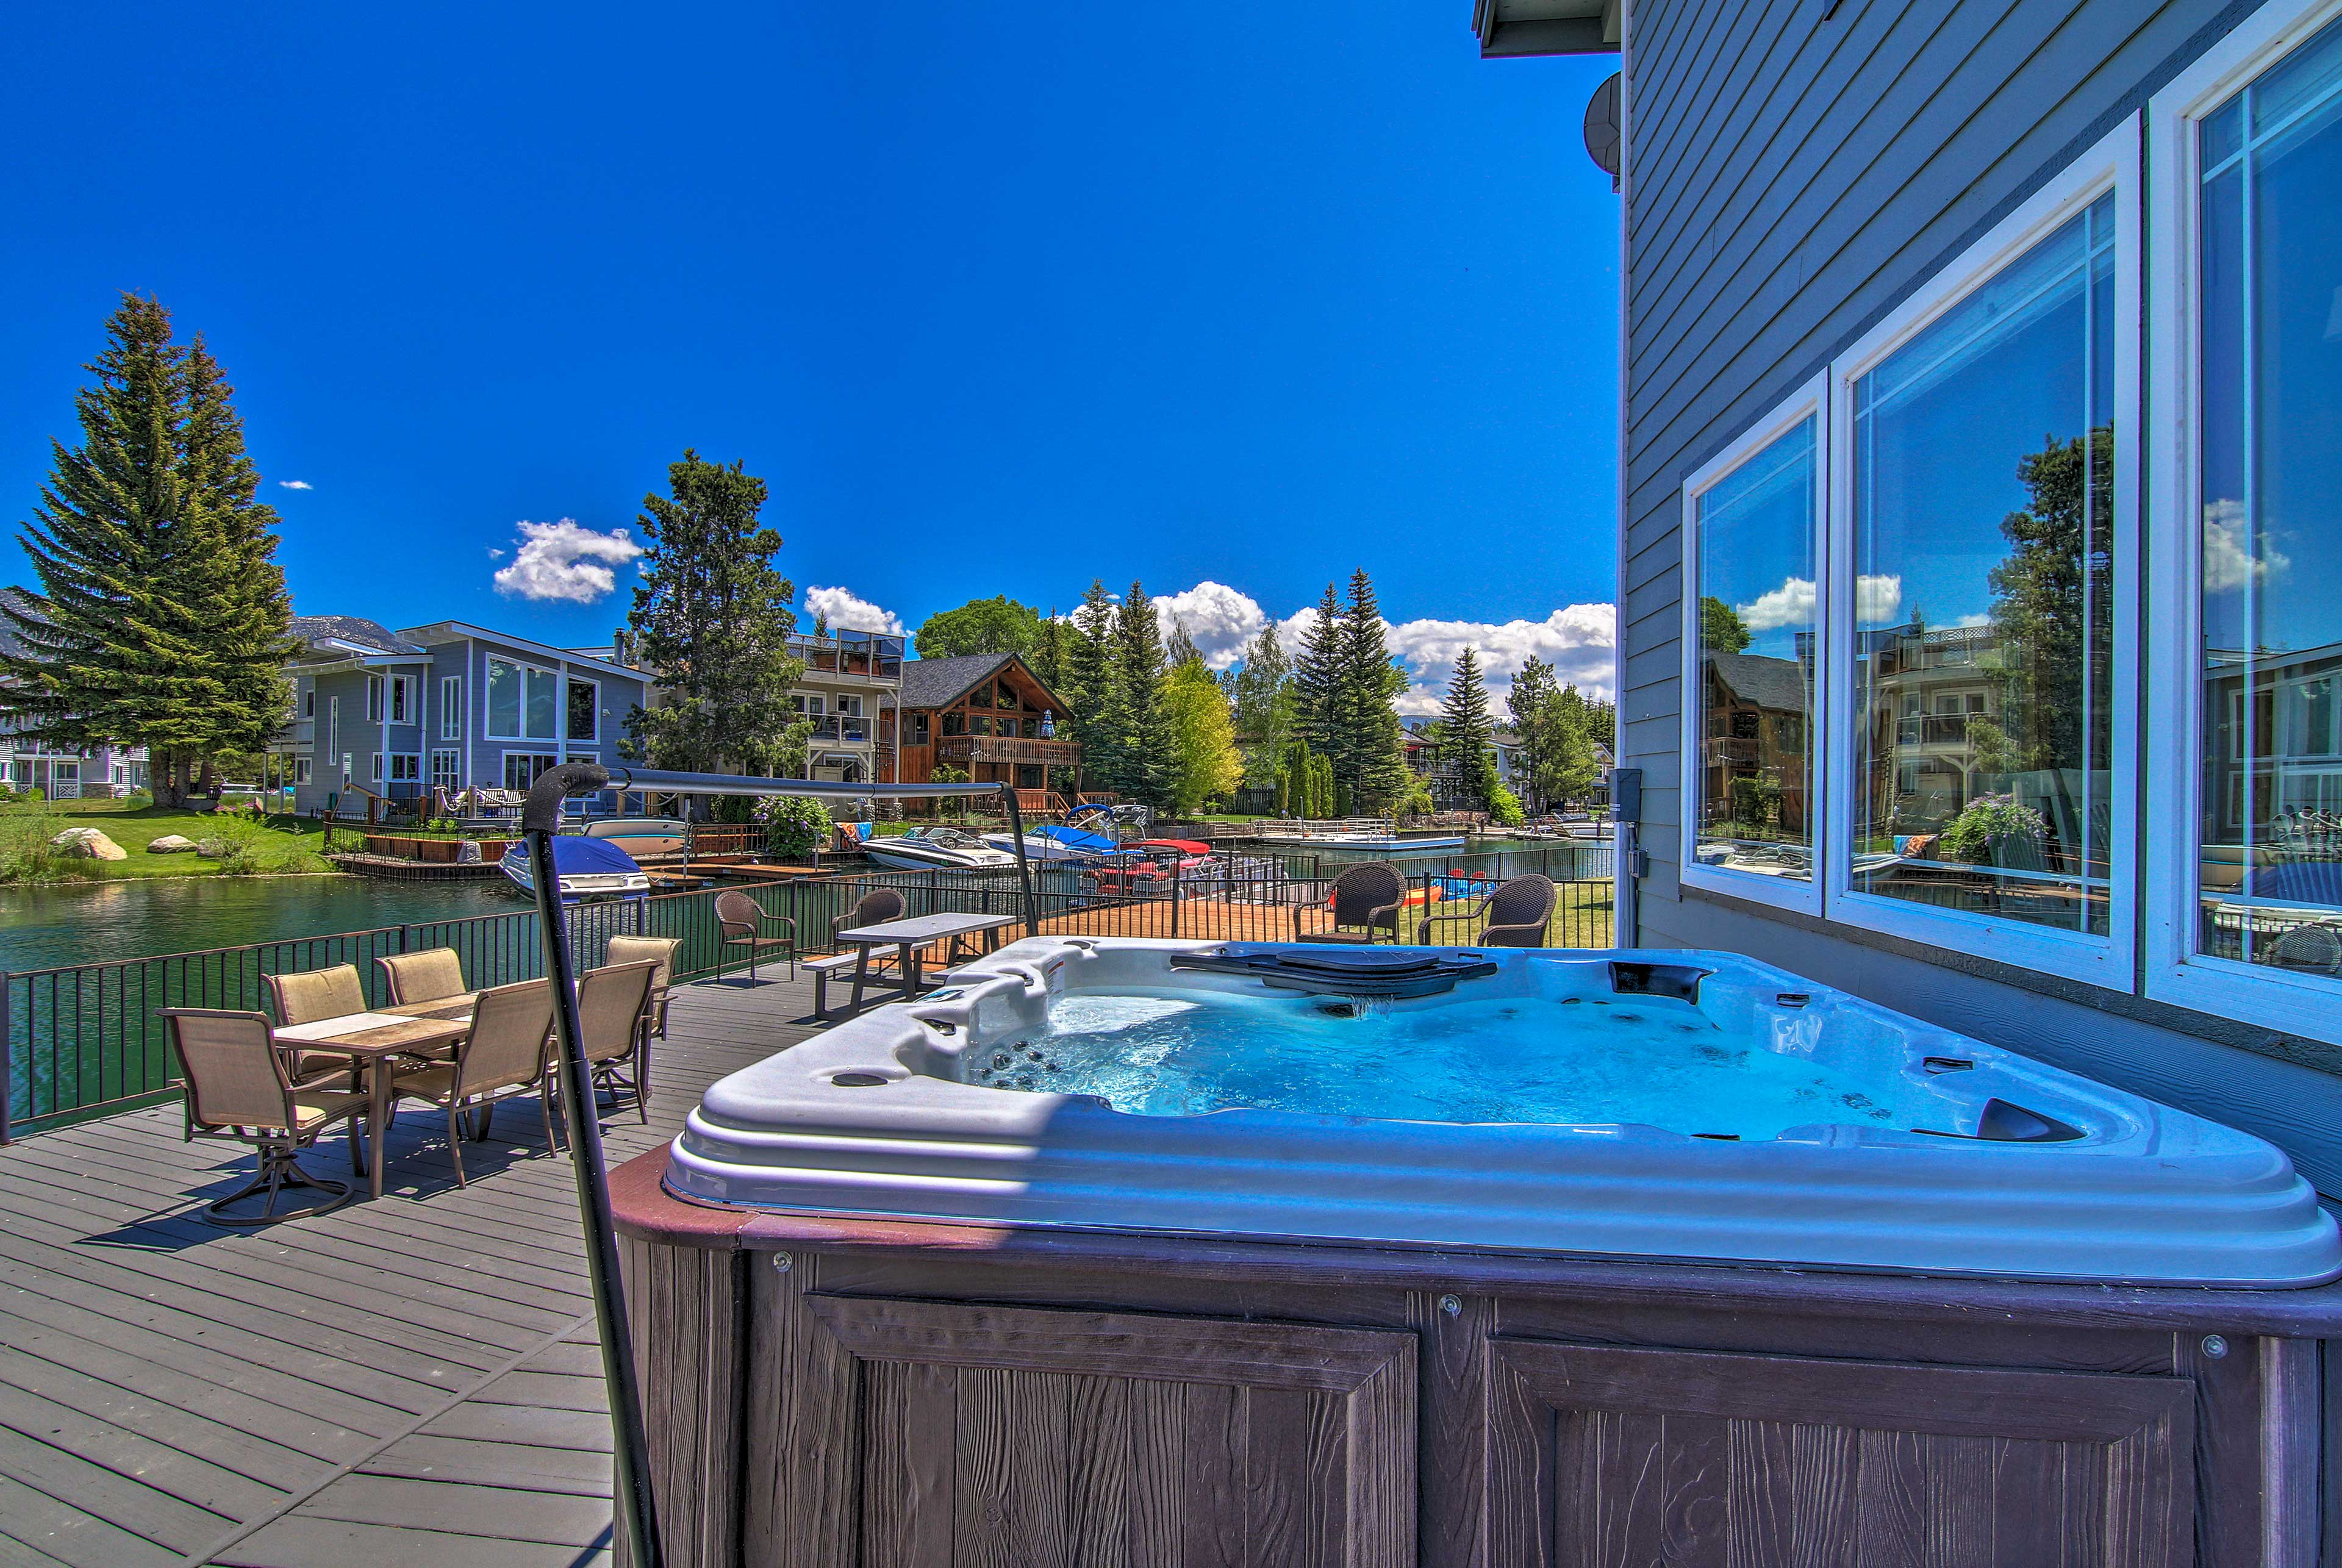 Live large with this expansive deck!